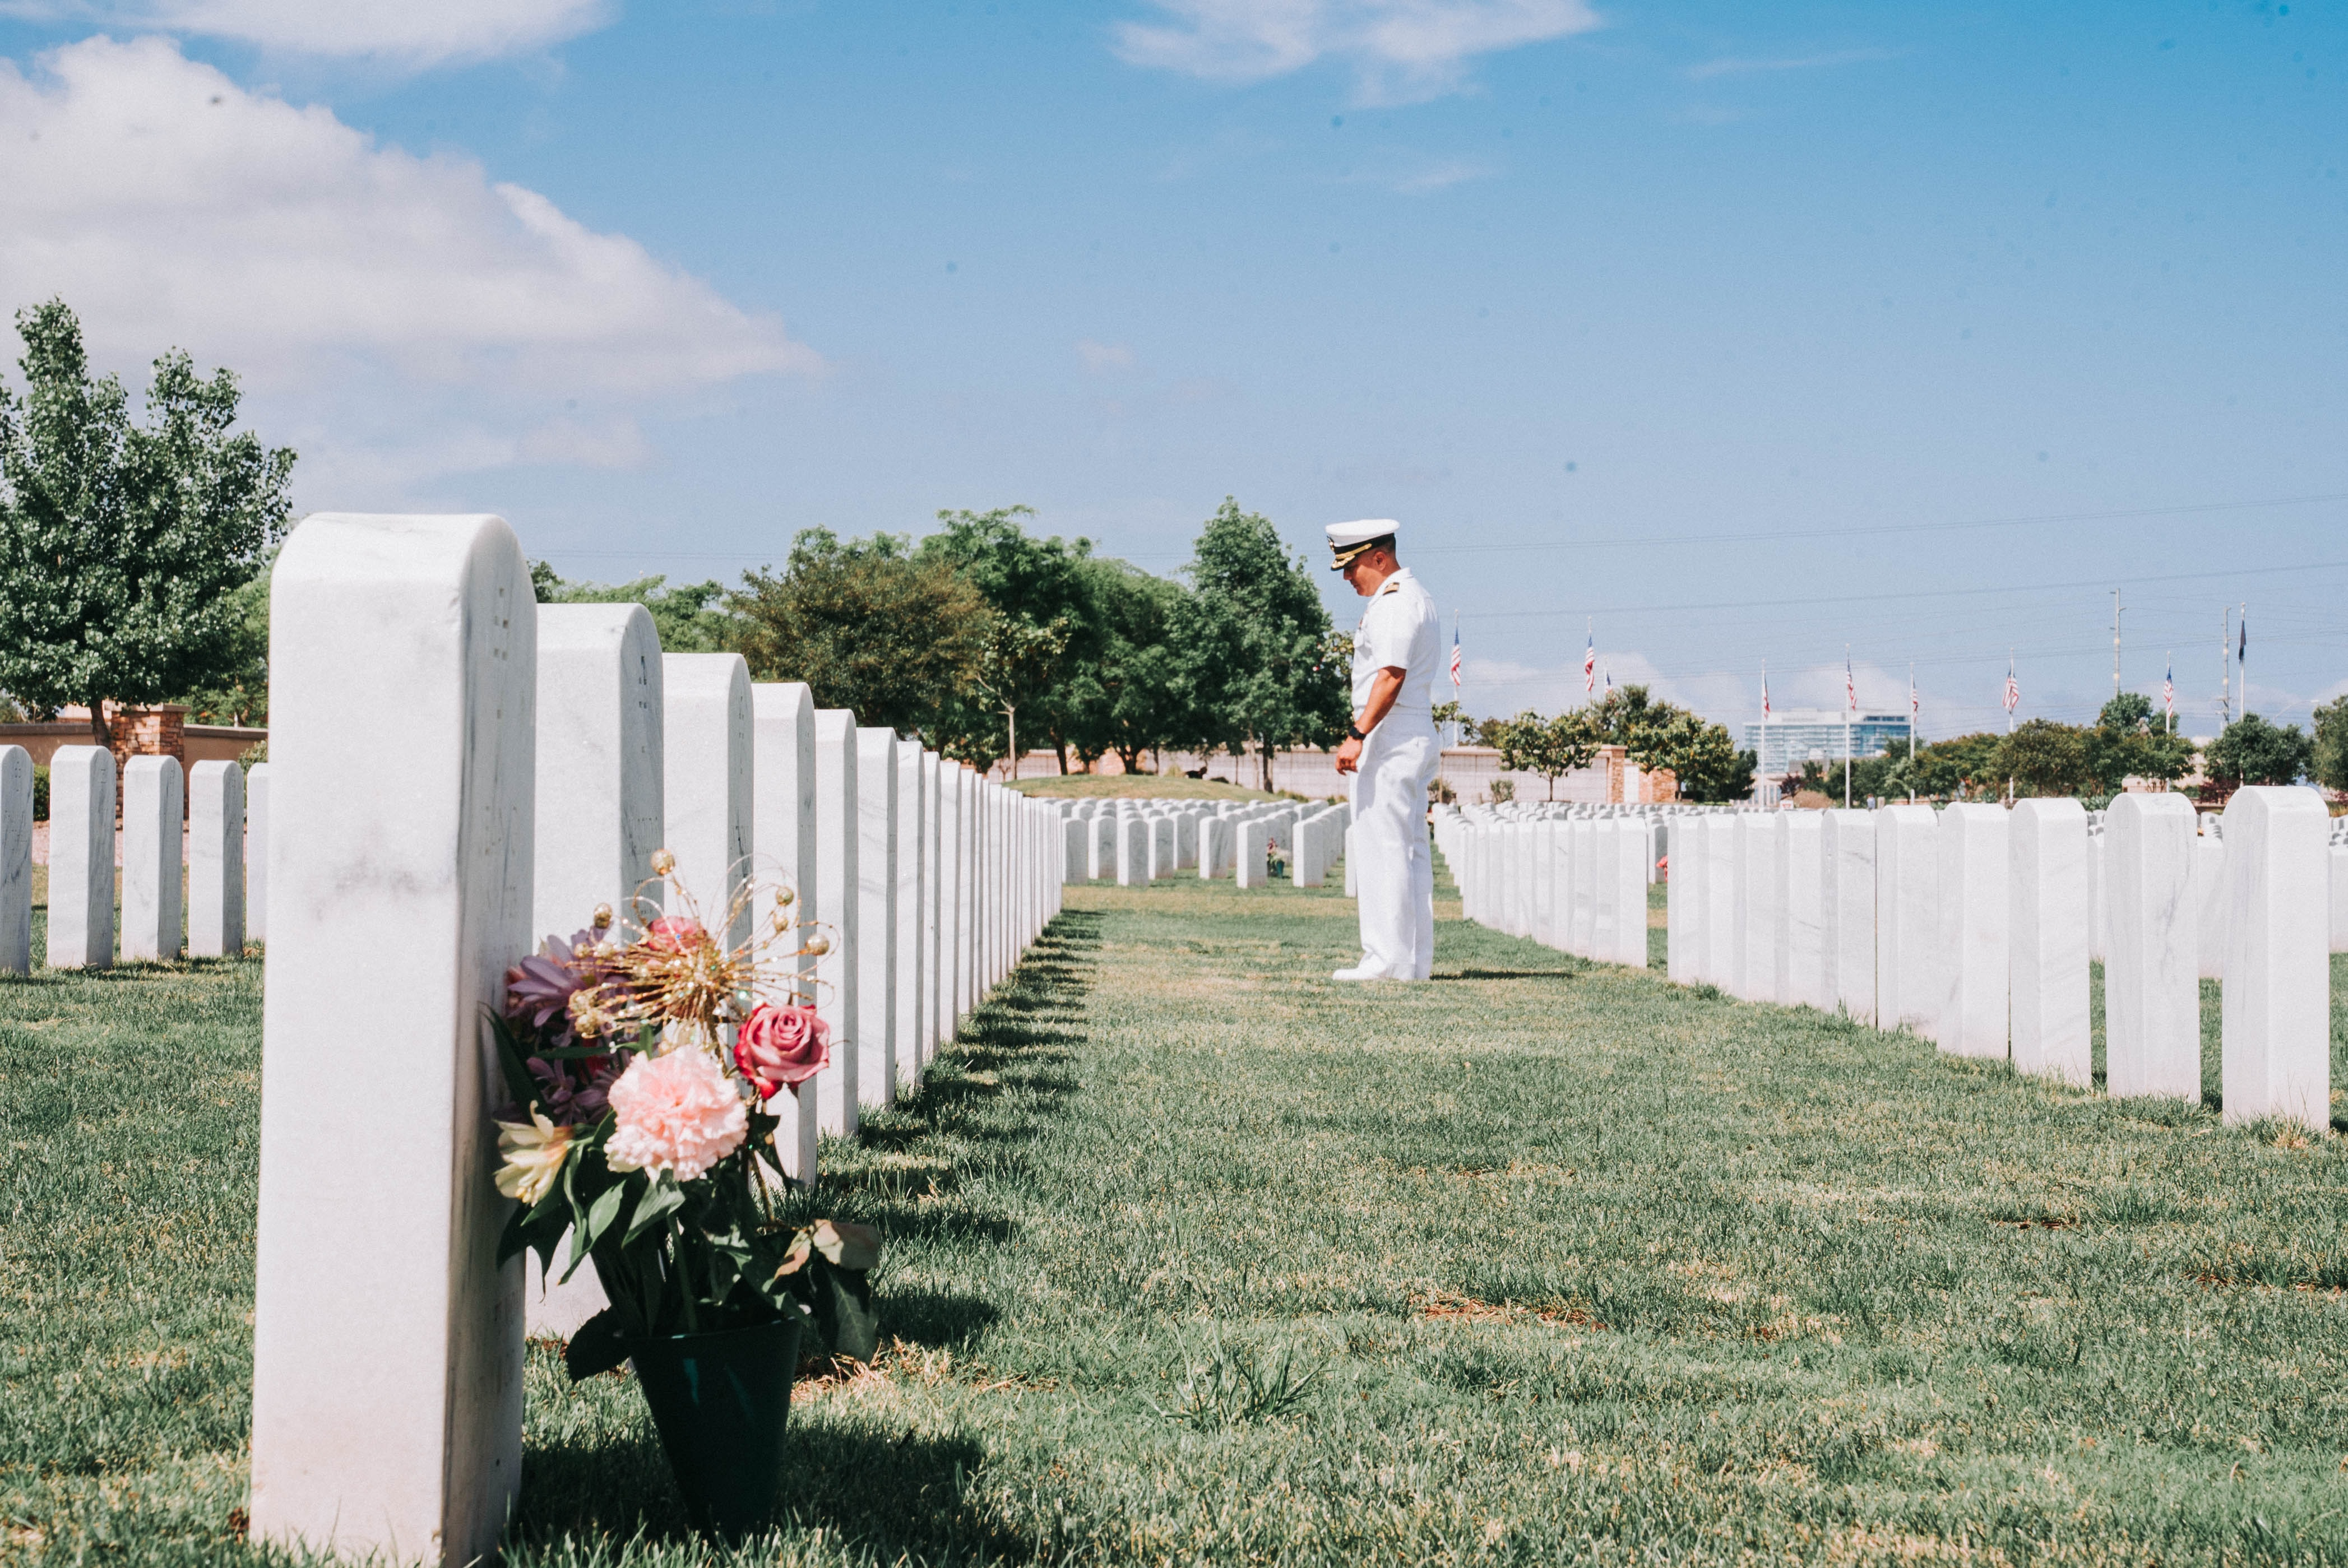 A man in US Navy dress whites stands on the grass in a military cemetery looking at the headstones